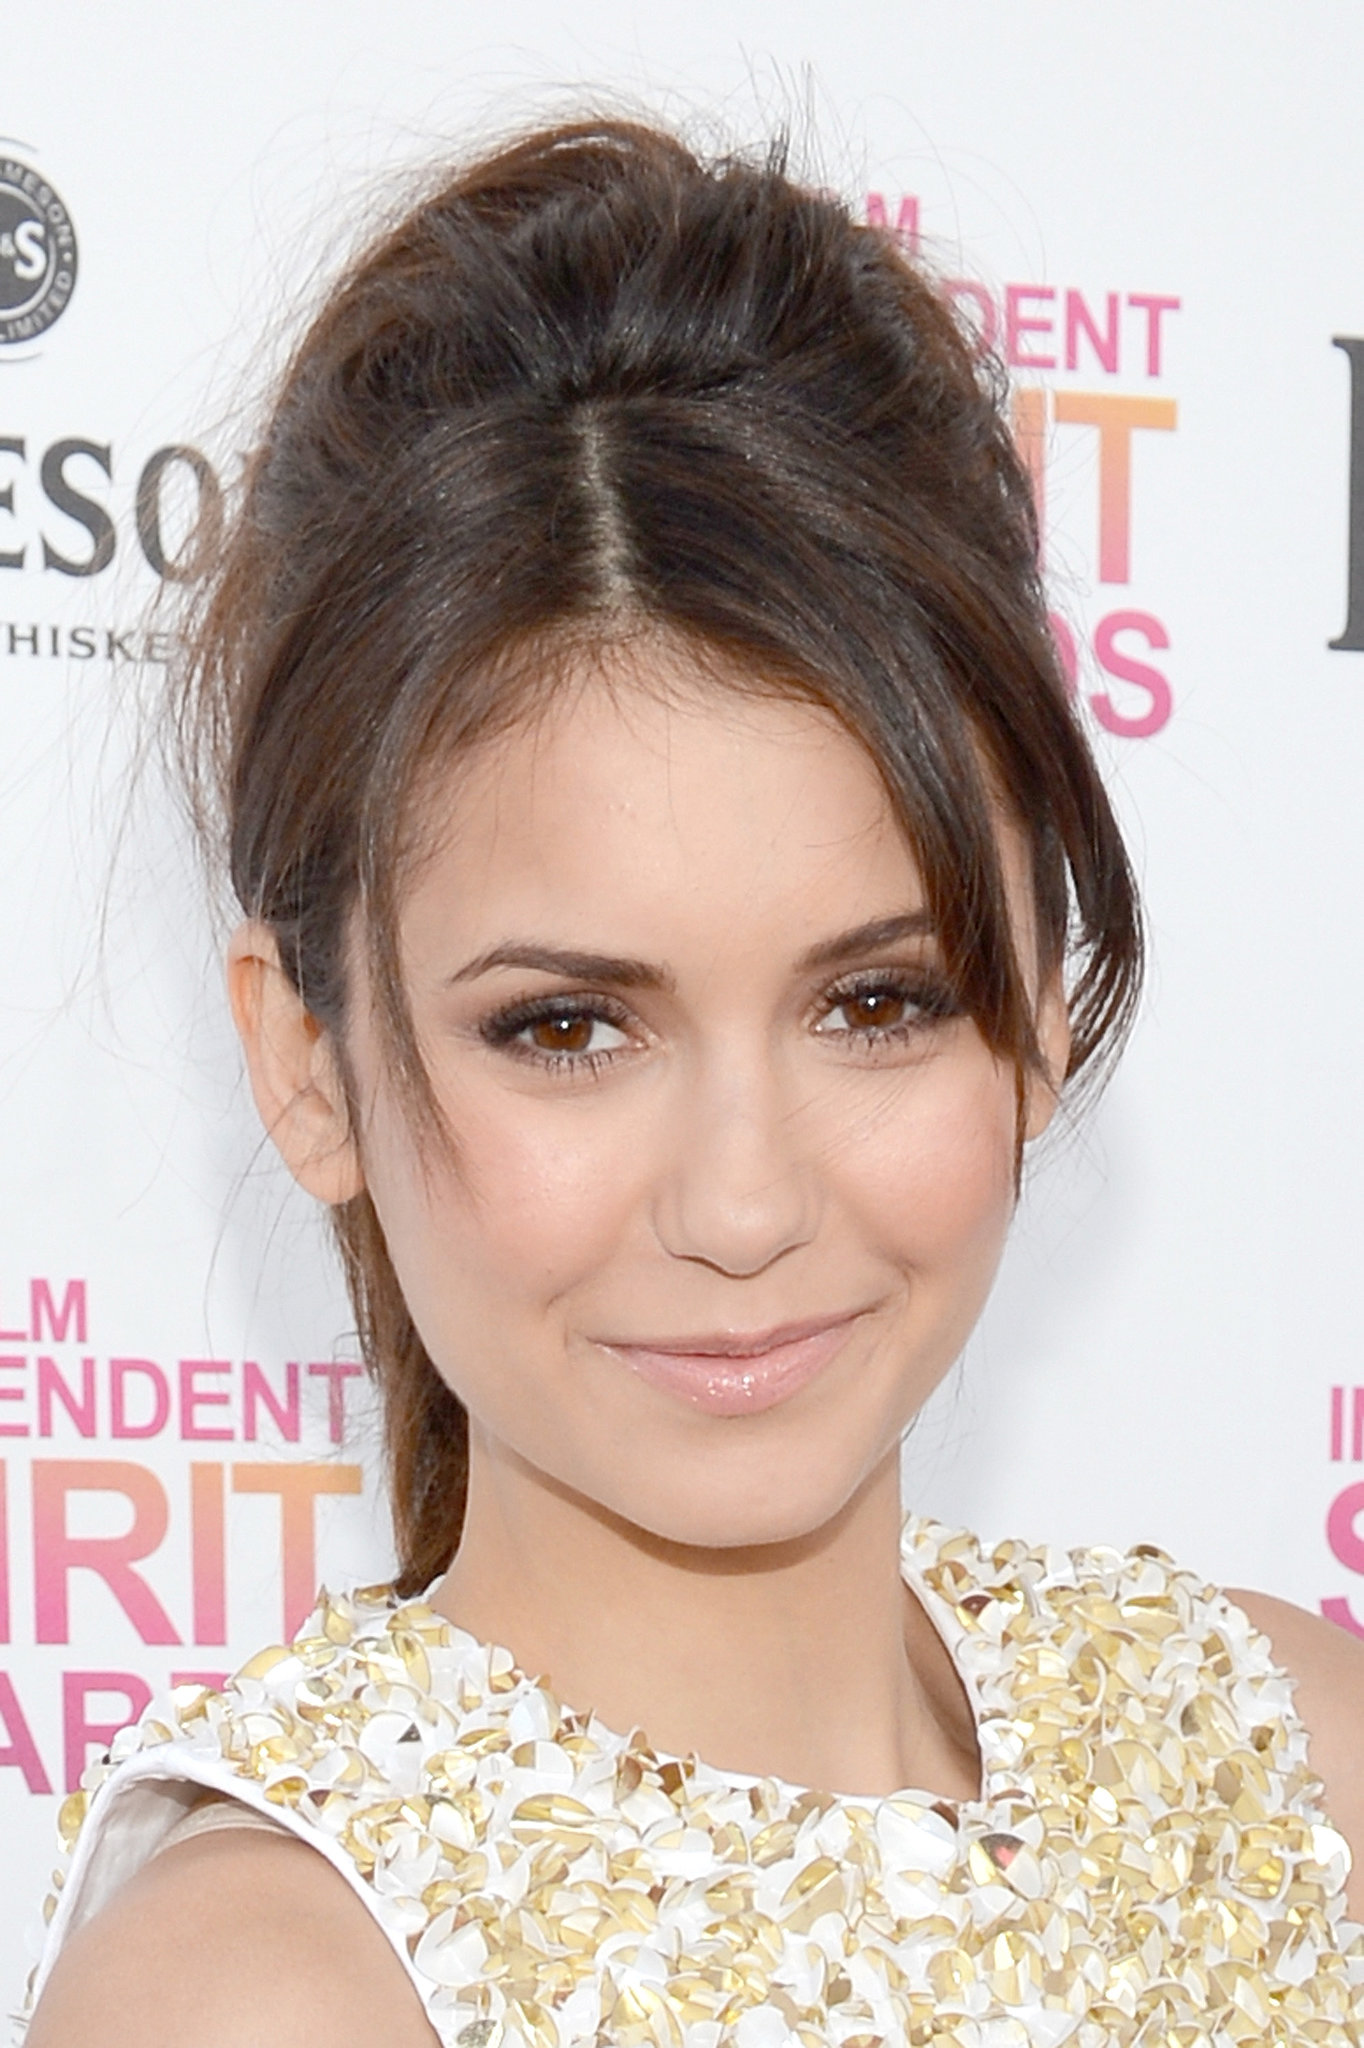 Nina Dobrev's high ponytail ups the cute factor with some volume and parted bangs.